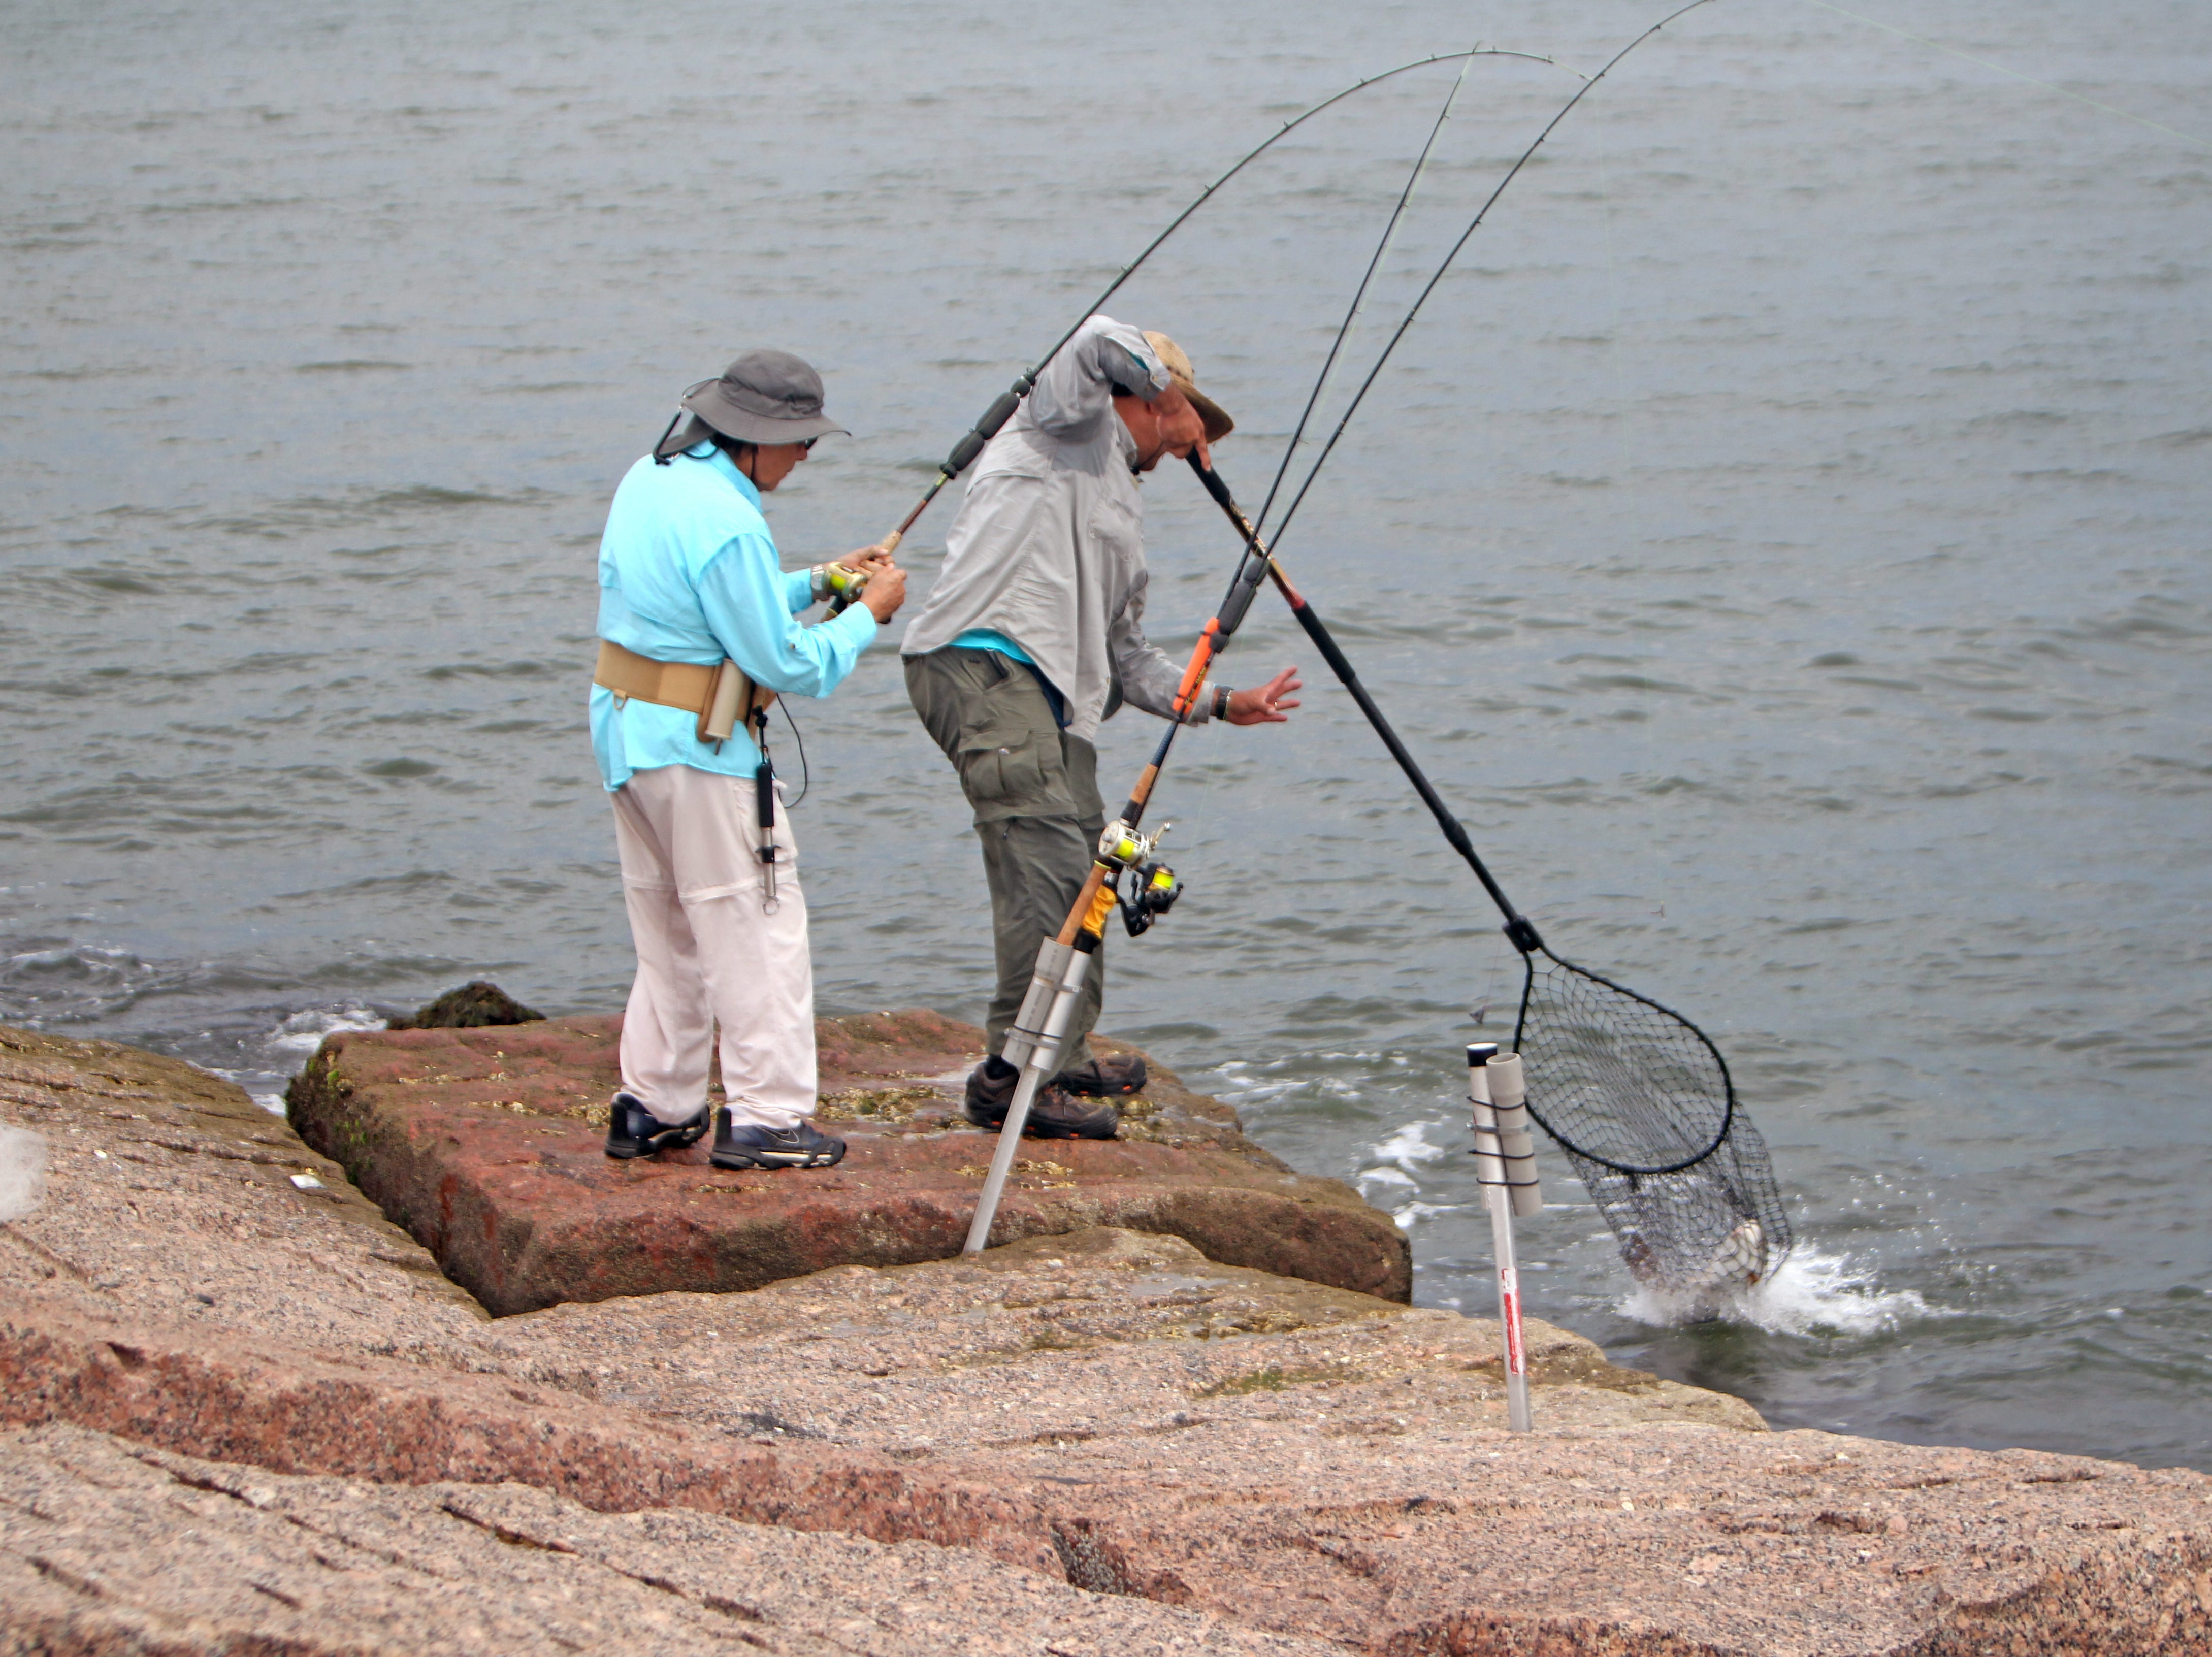 A long-handled net is essential if you want to land more fish from the rocks.